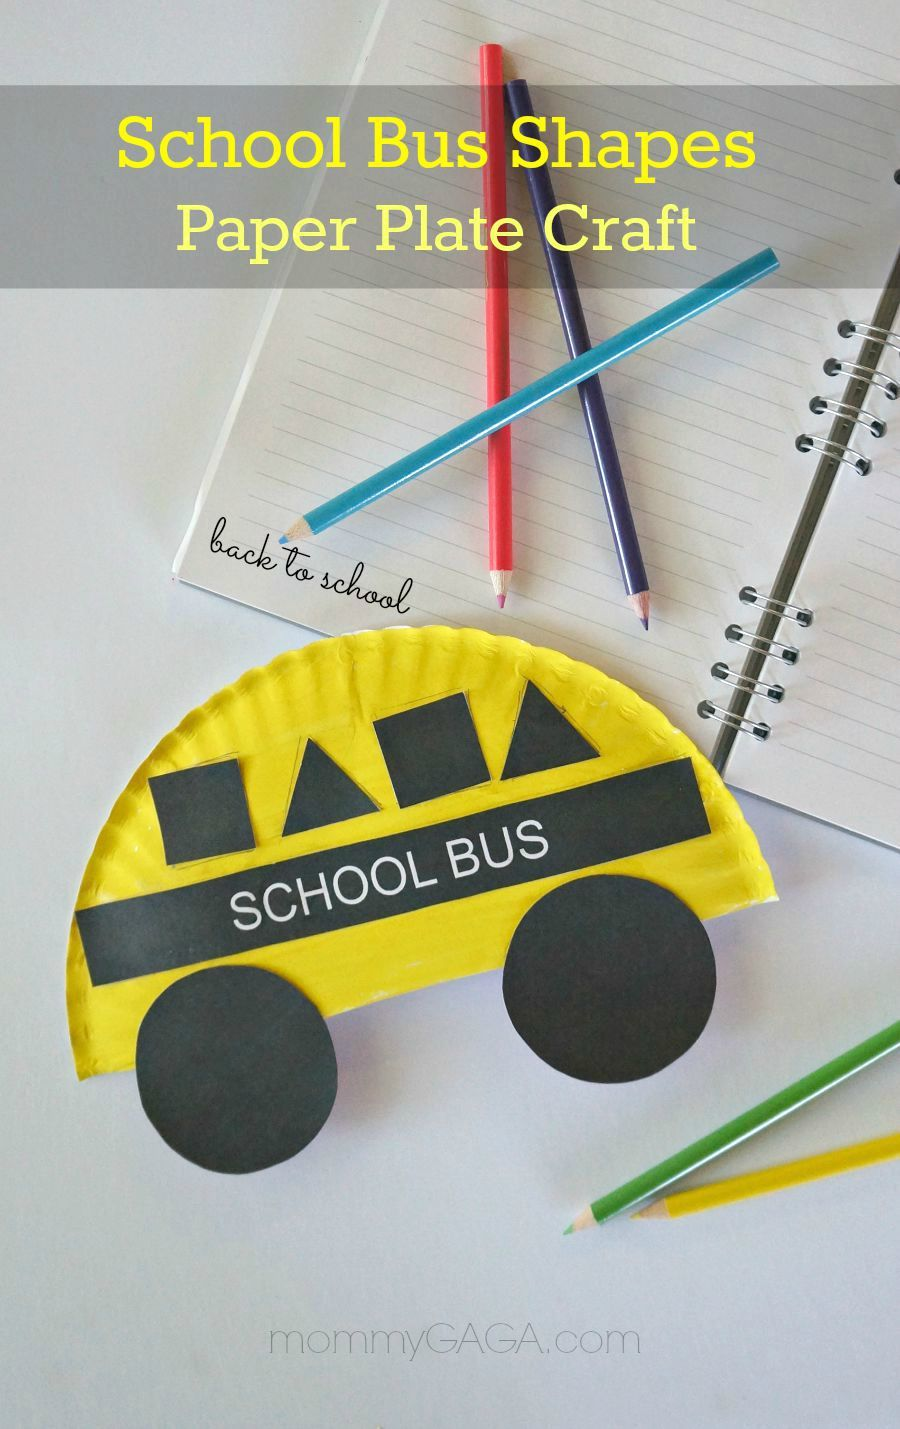 Easy Craft Ideas For Kids At School Part - 15: Back To School Fun: Easy Paper Plate School Bus Shapes Craft Back To School  Crafts For Kids- School Bus Shapes Paper Plate Craft If You Appreciate Arts  And ...